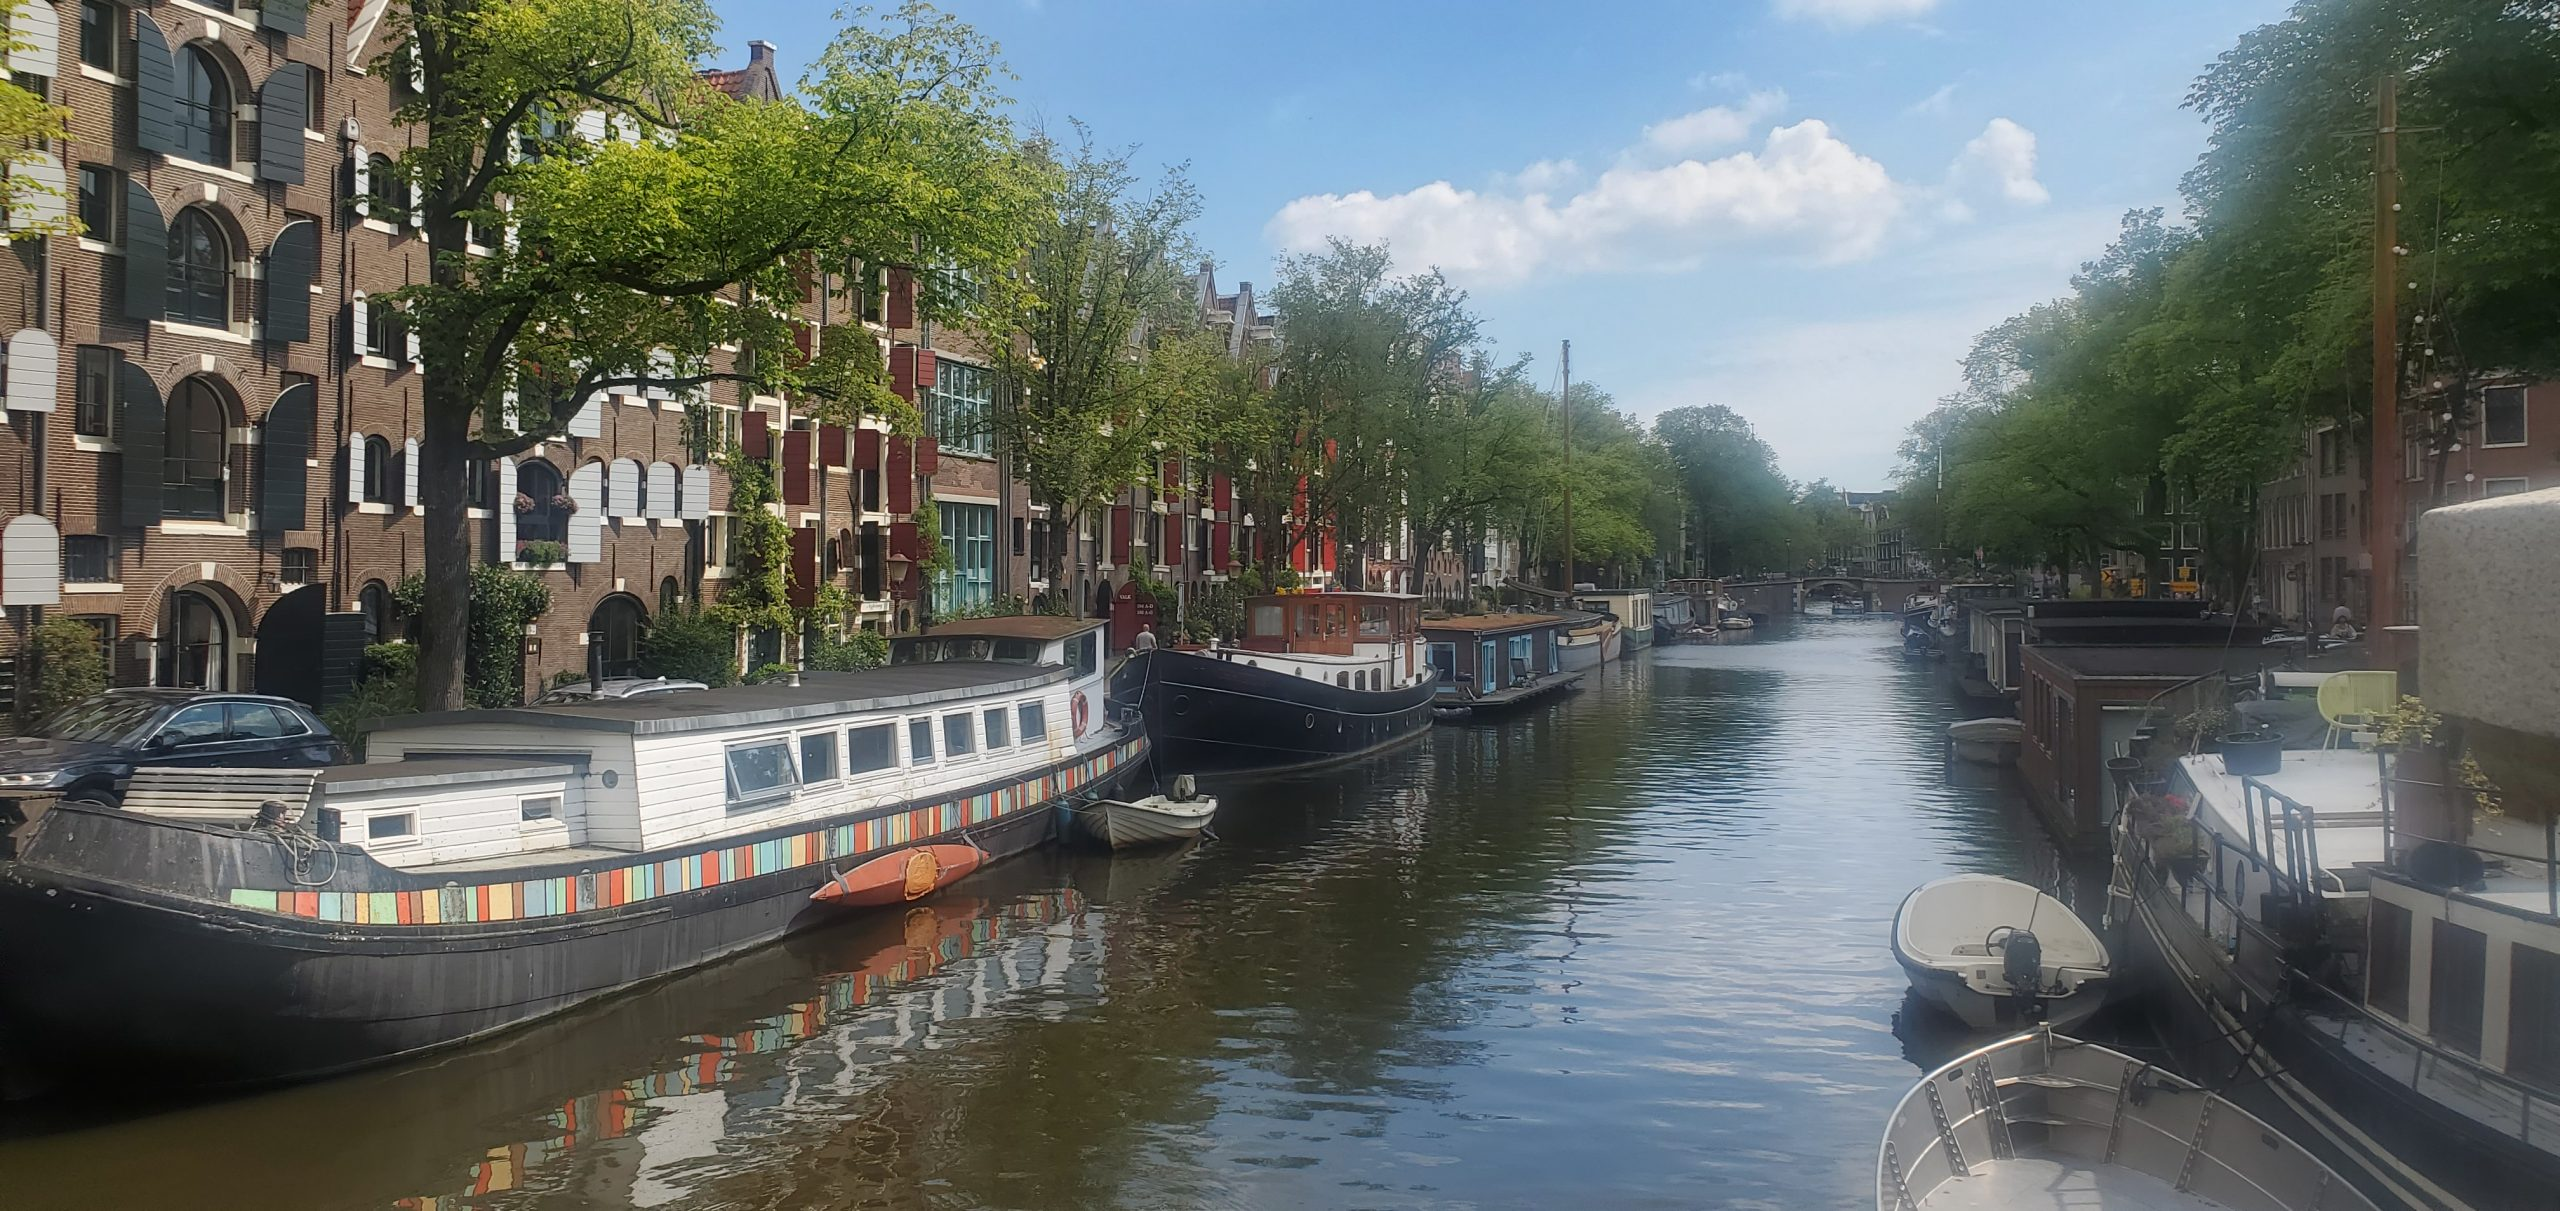 Quaint houseboats line a canal in Amsterdam.